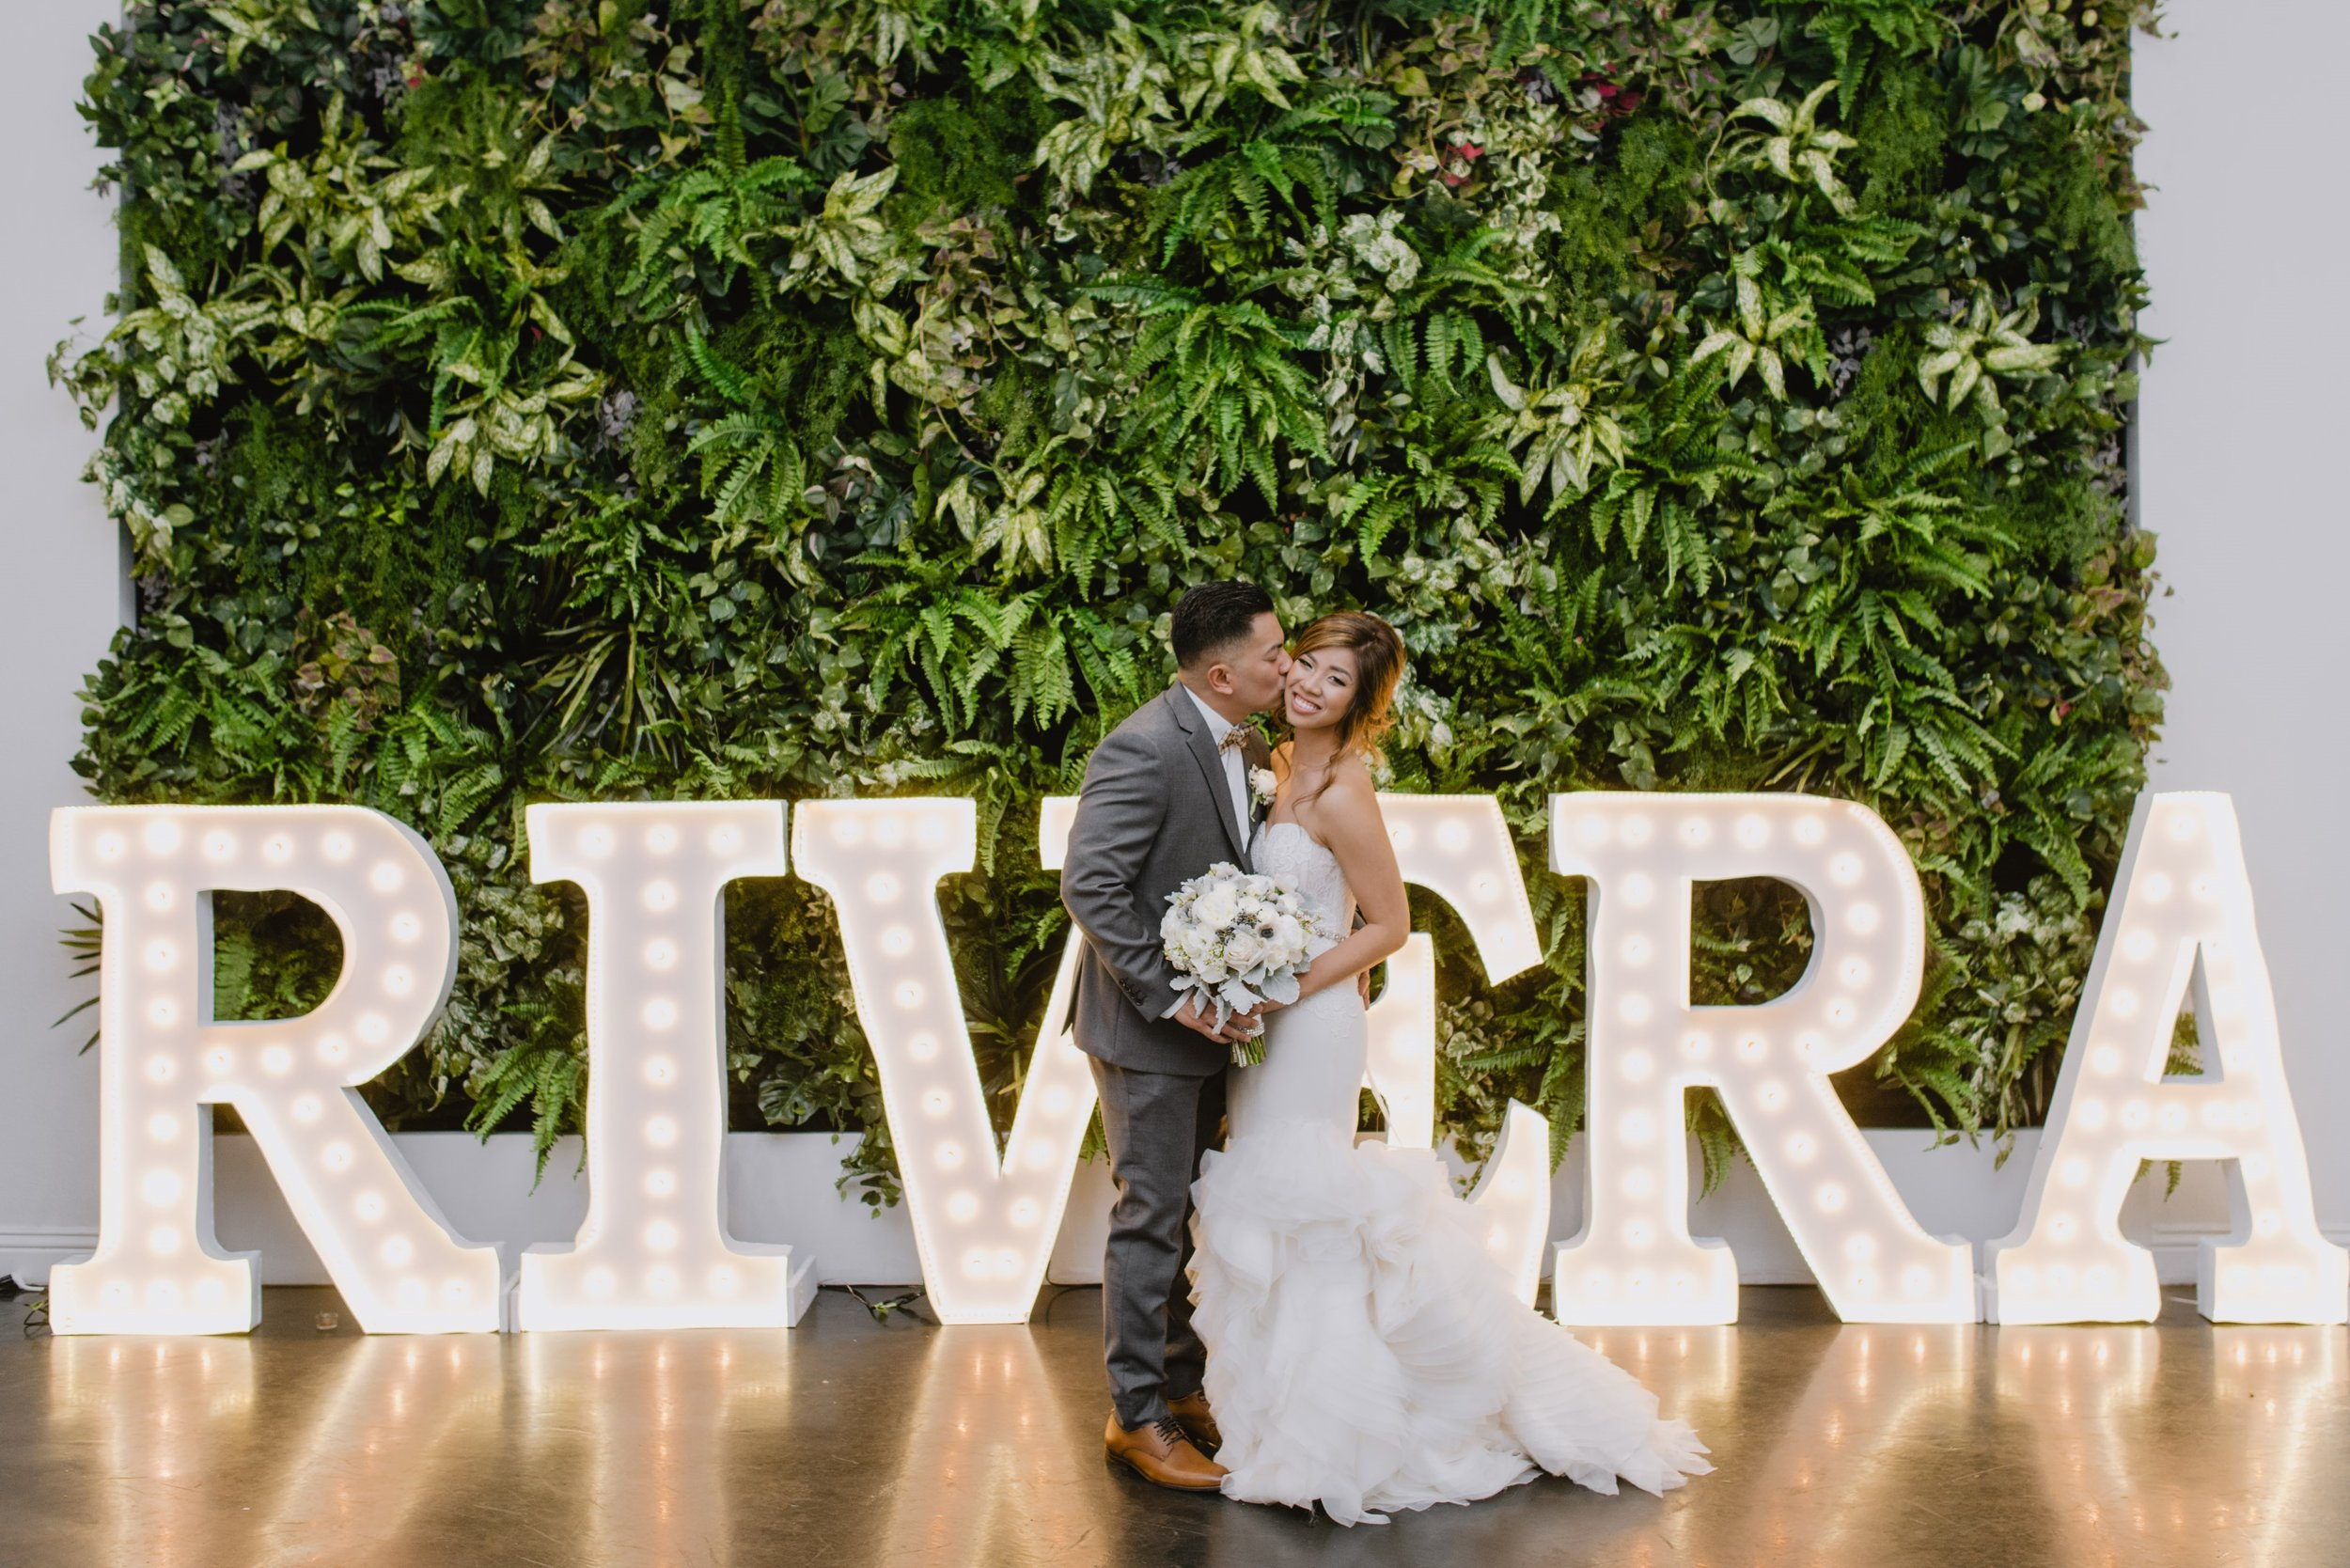 Rivera_Wedding-609-2.jpg